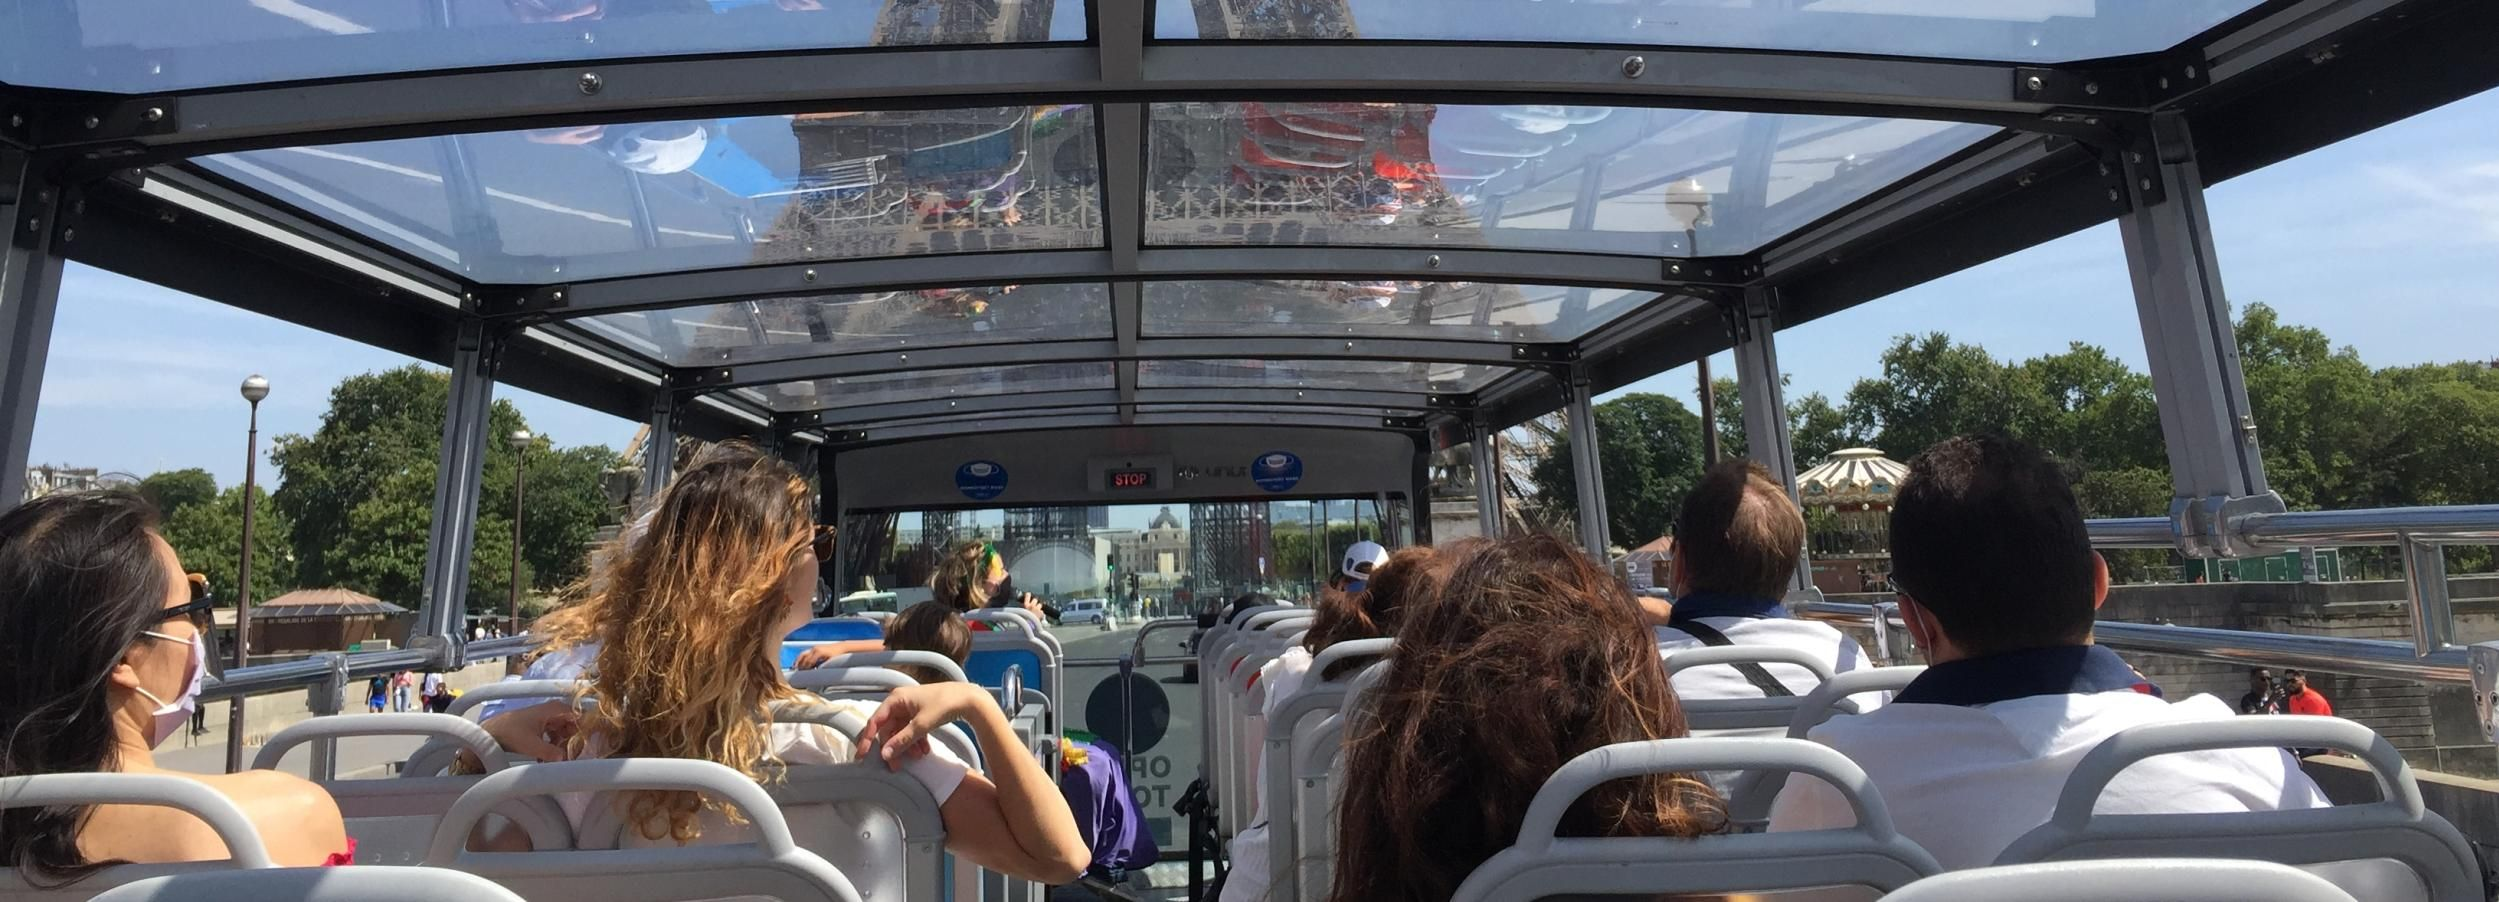 Paris: Open Top Bus Tour for Kids in French